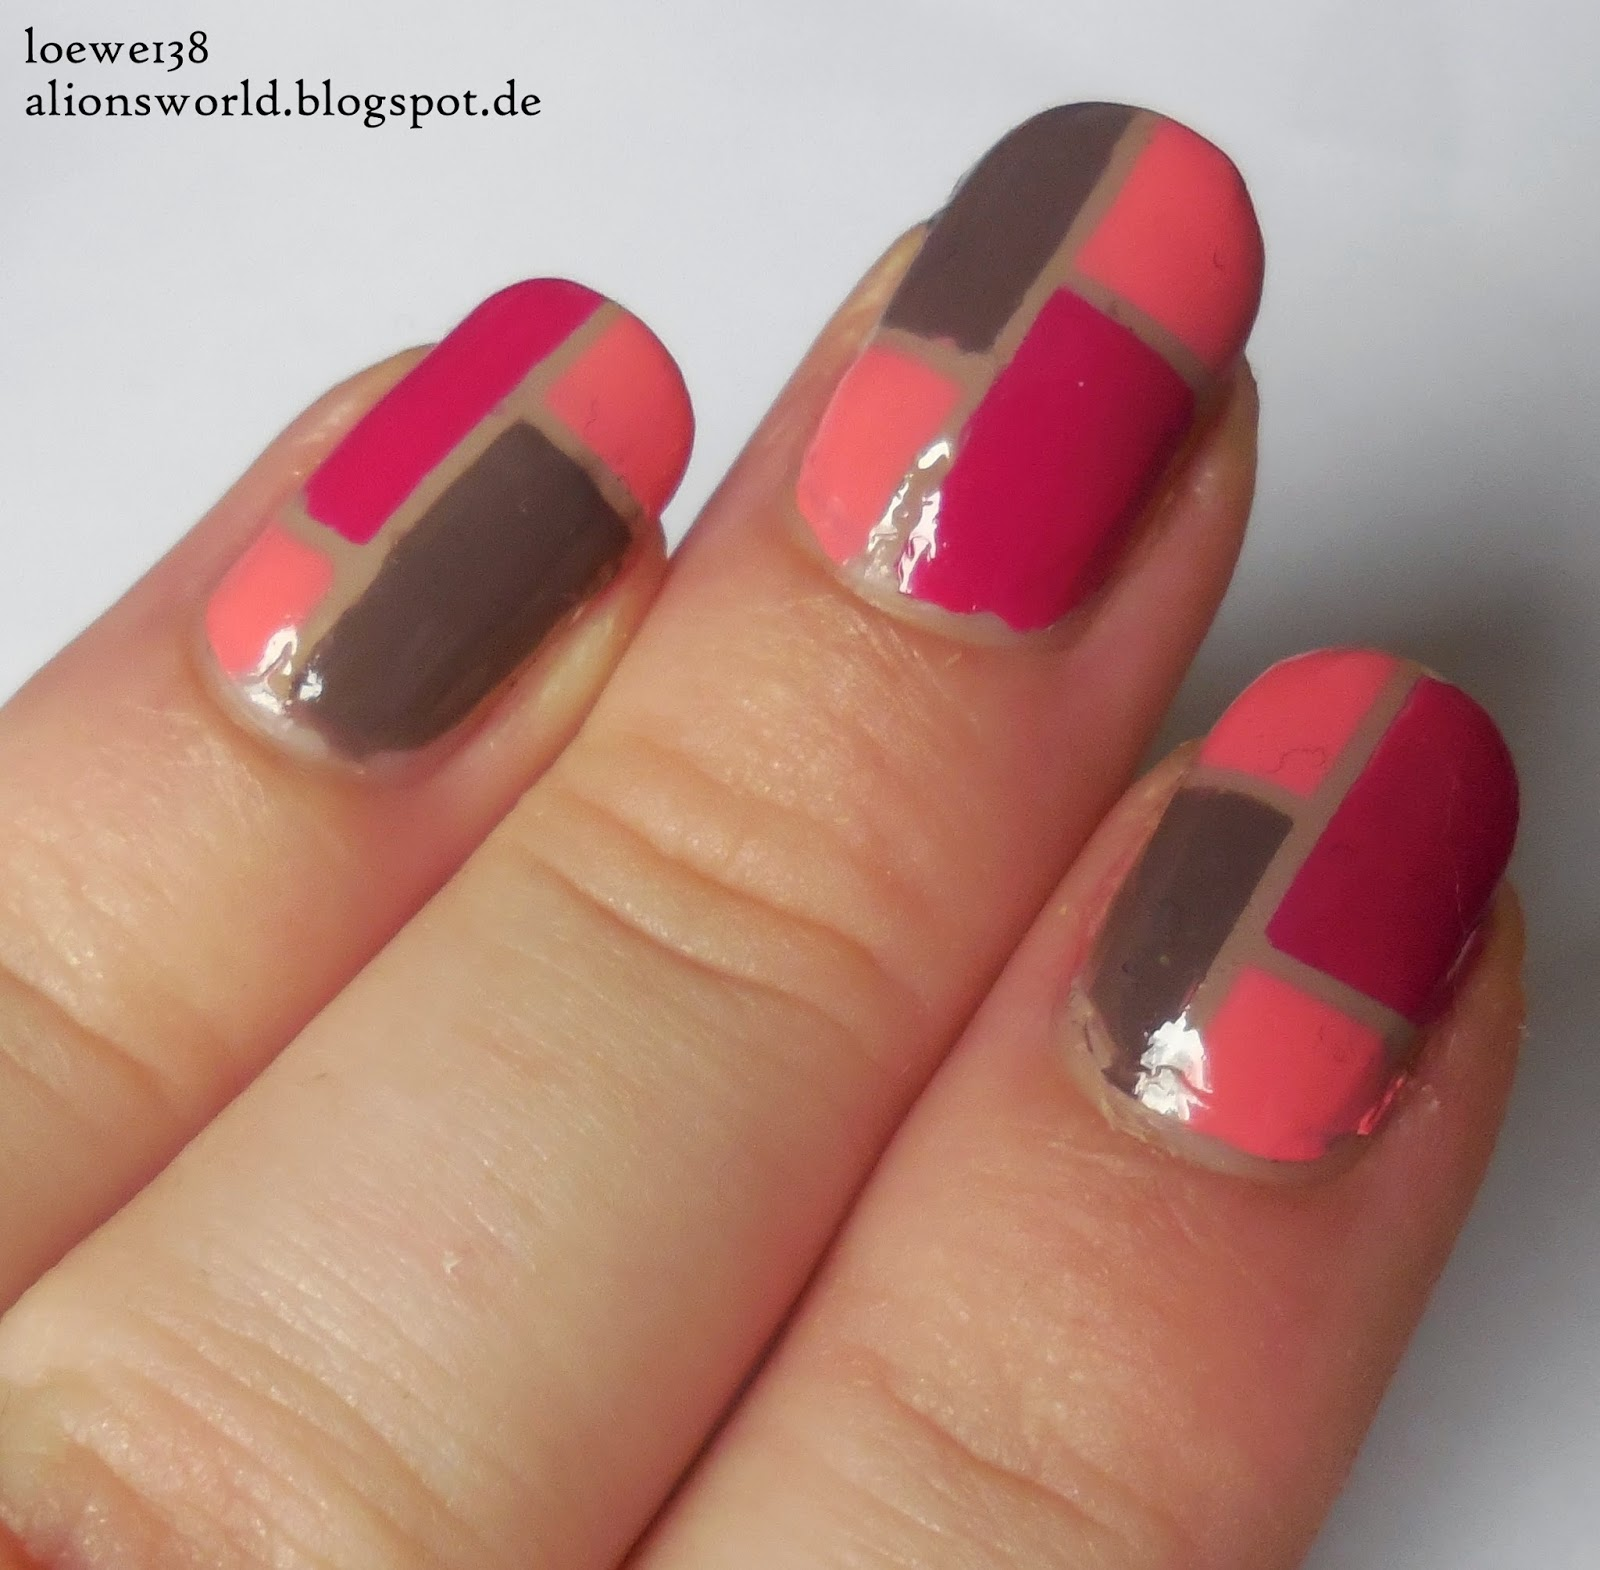 http://alionsworld.blogspot.com/2015/02/striping-quadrate.html